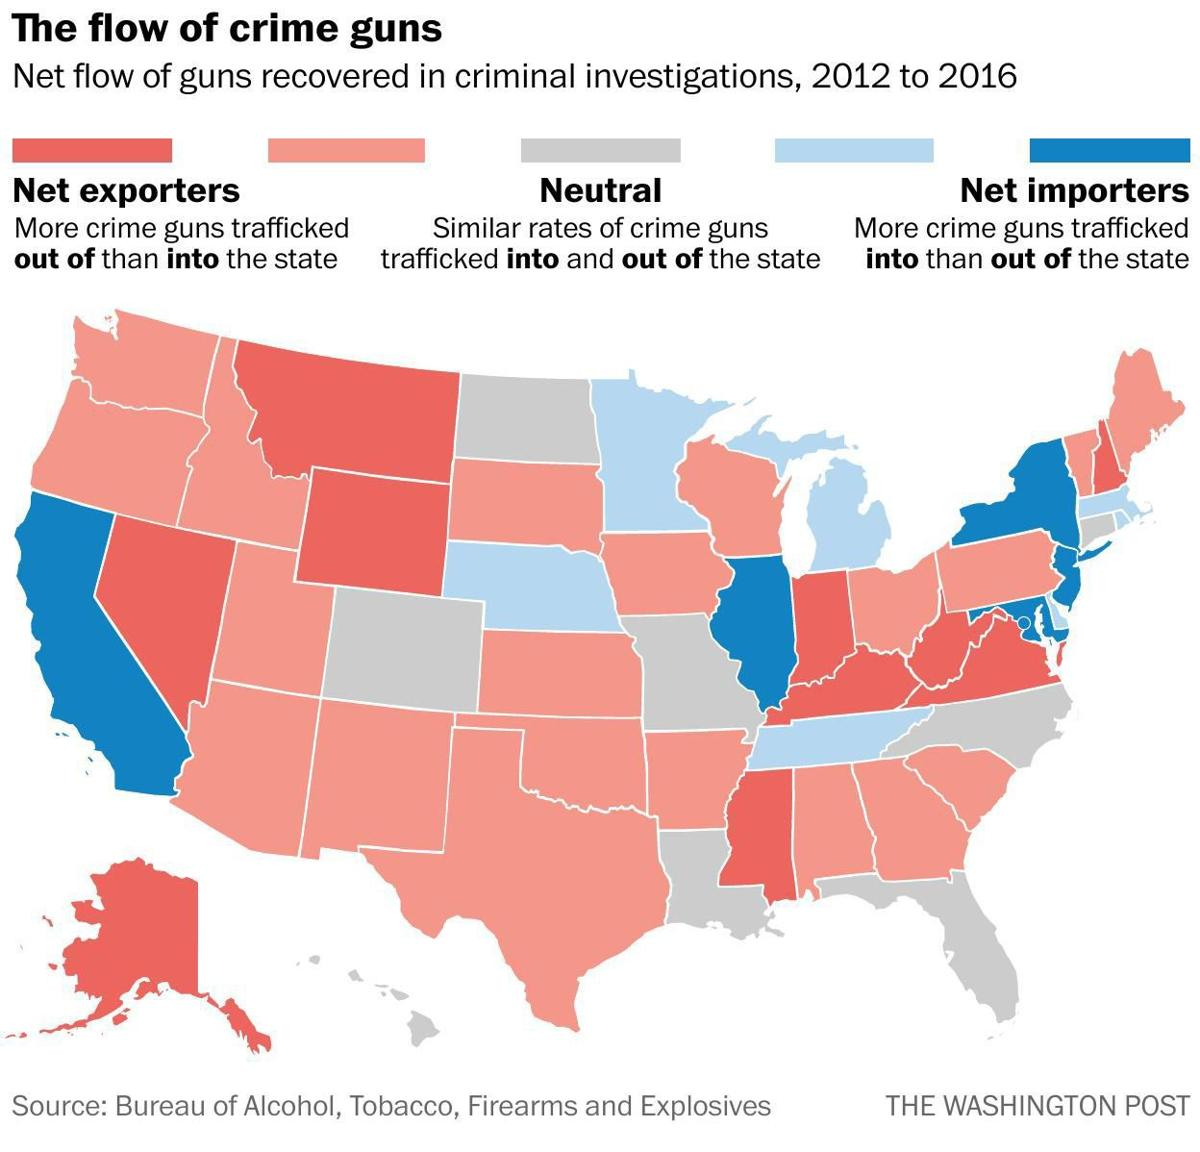 How states with loose oversight export crime guns nationwide